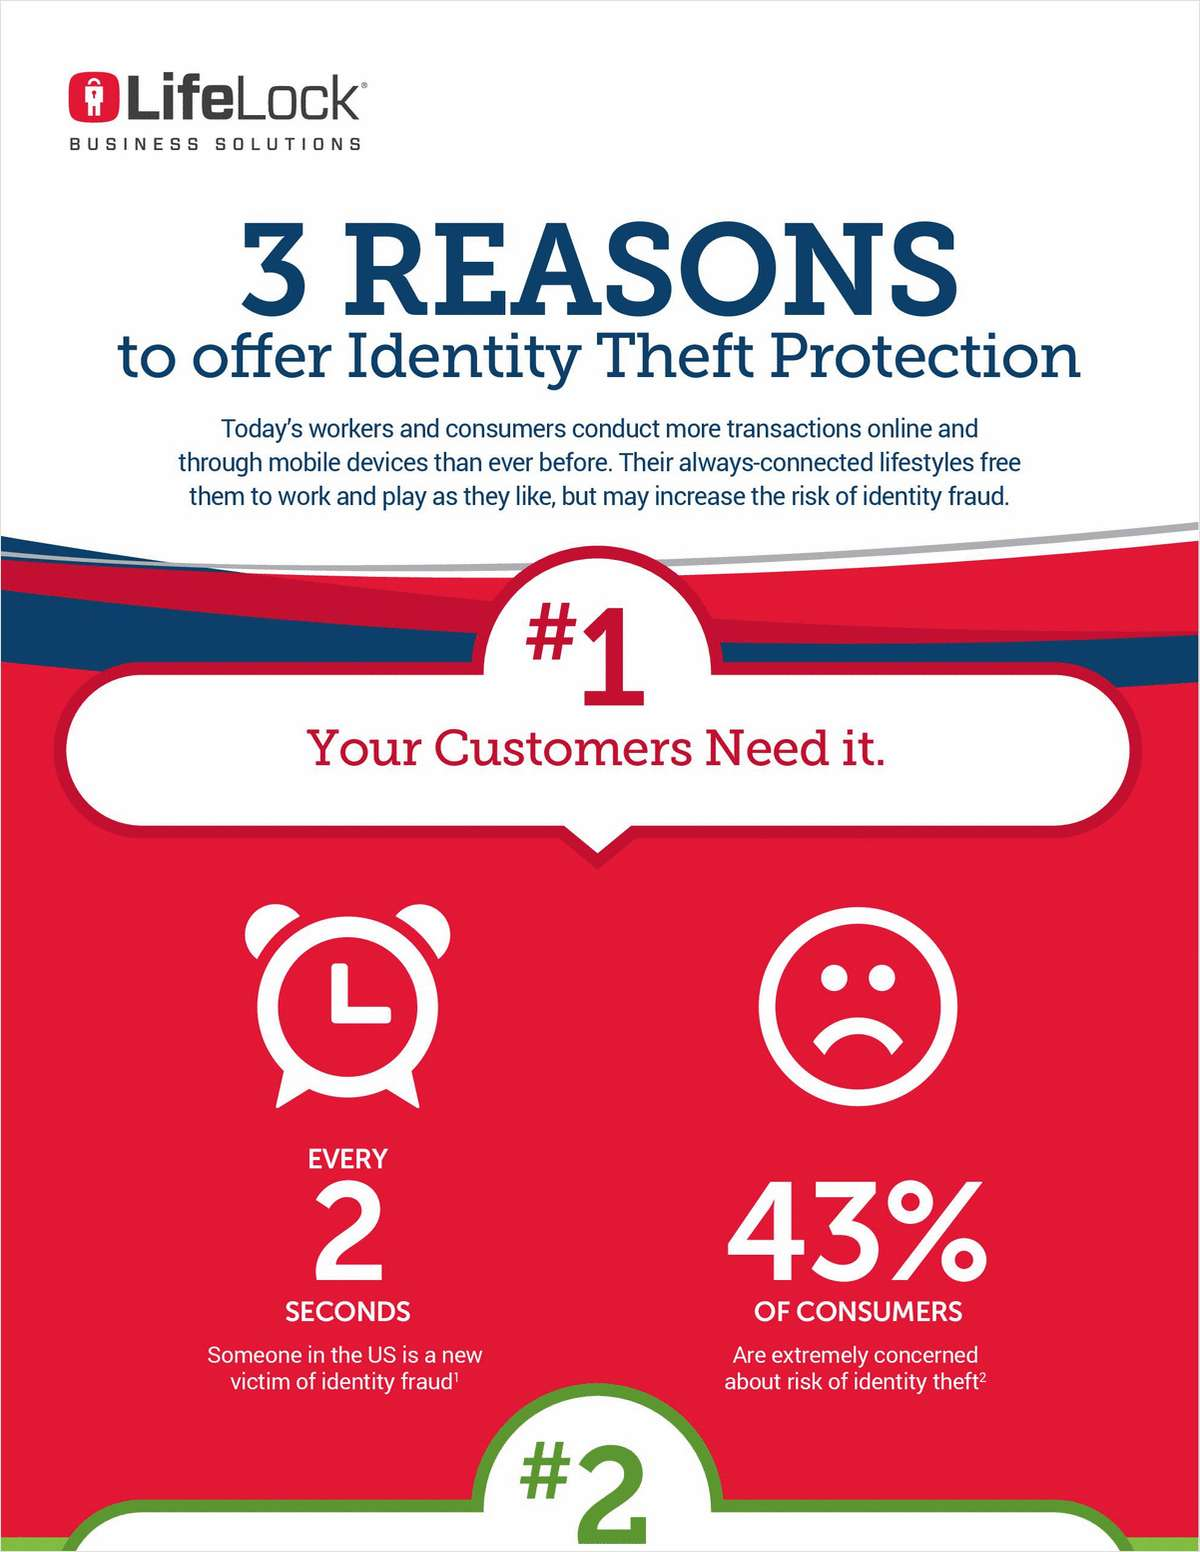 3 REASONS to Offer Identity Theft Protection